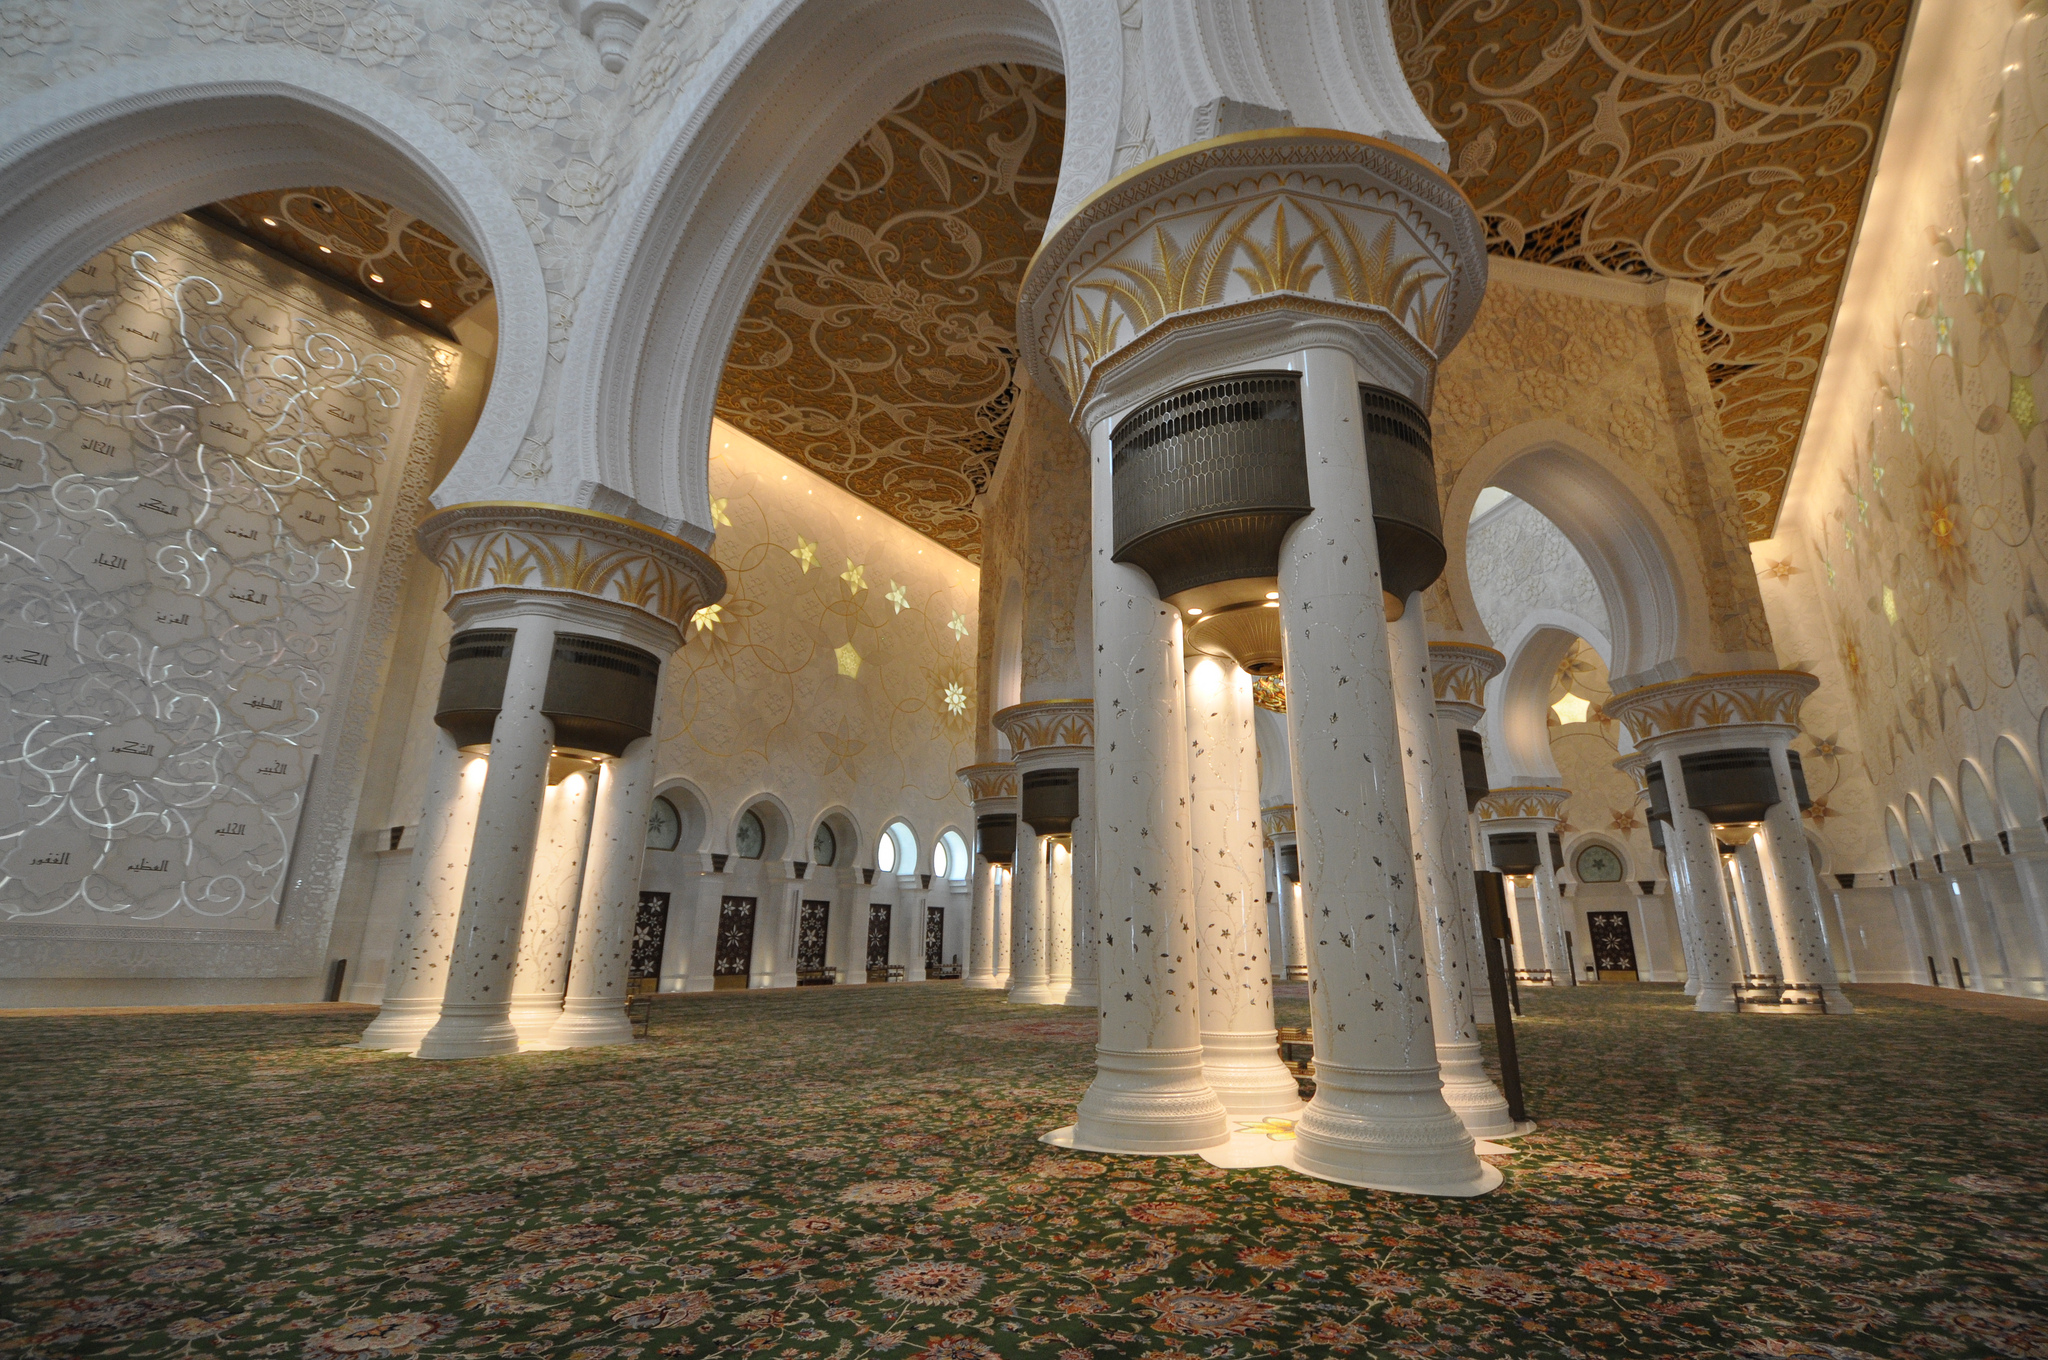 Why The Sheikh Zayed Mosque Is The Most Beautiful Mosque In The Uae